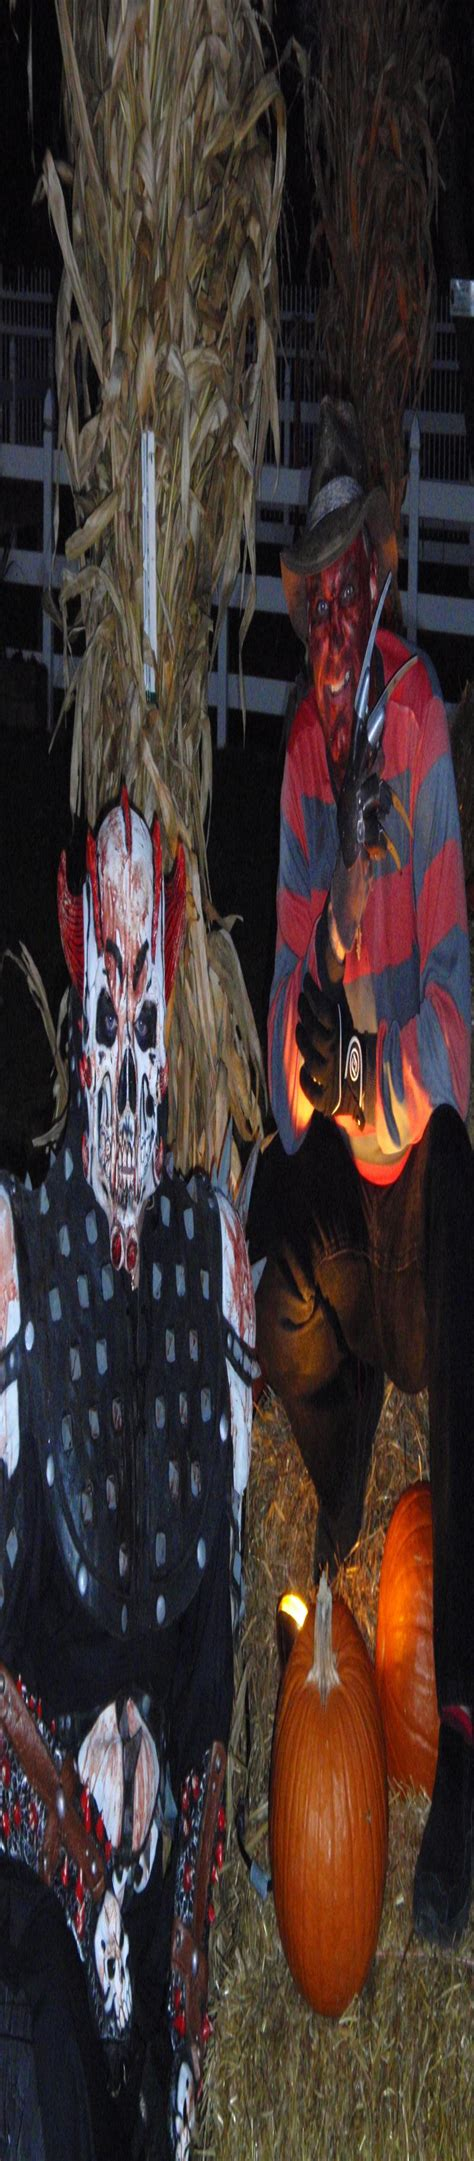 night terrors haunted house haunted house in ann arbor michigan night terrors haunted house